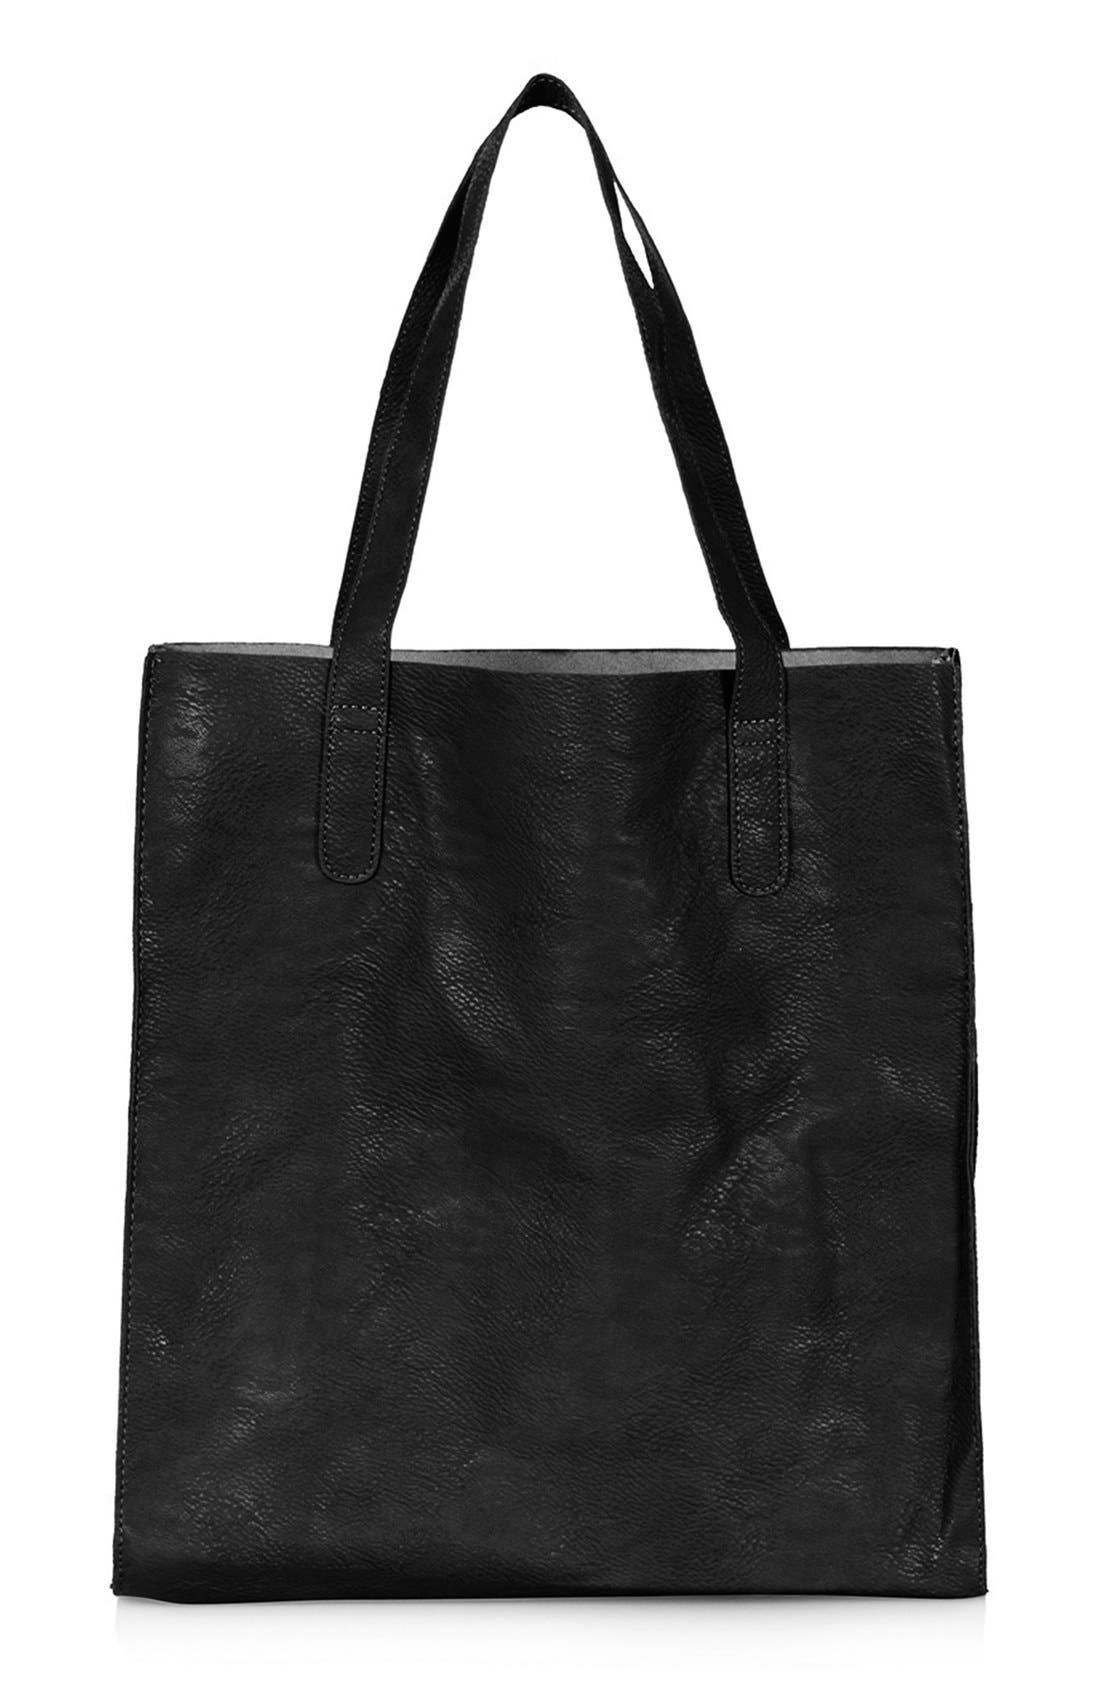 Alternate Image 1 Selected - Topshop Faux Leather Shopper